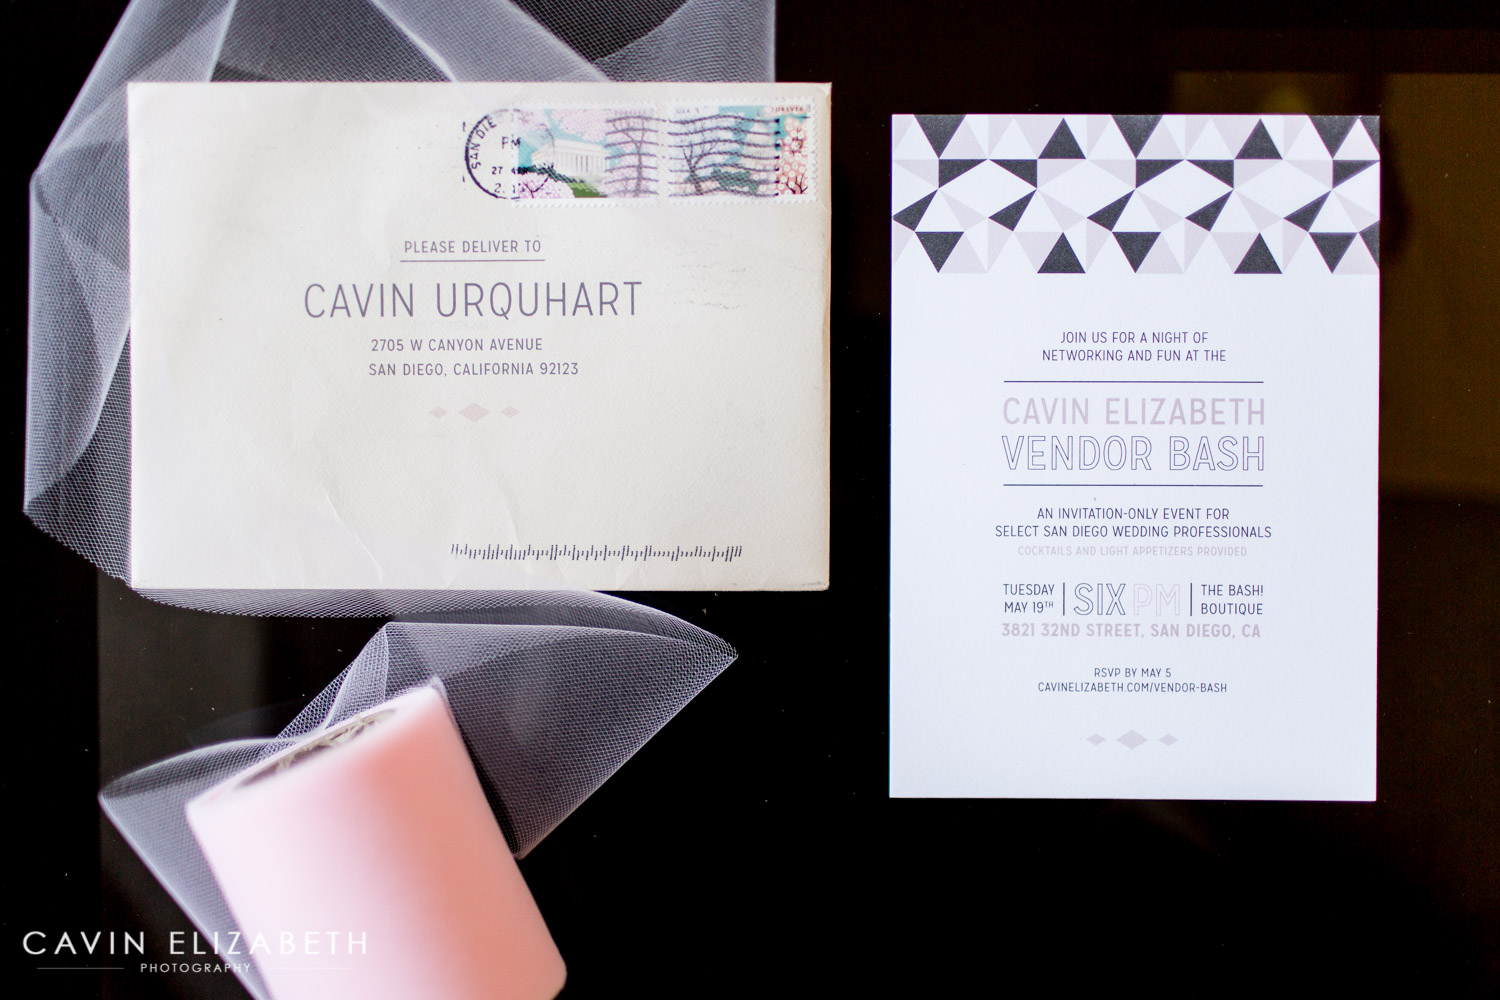 Cavin Elizabeth Vendor Bash Spring 2015 Invitation Made By Sable And Snow, San  Diego Wedding